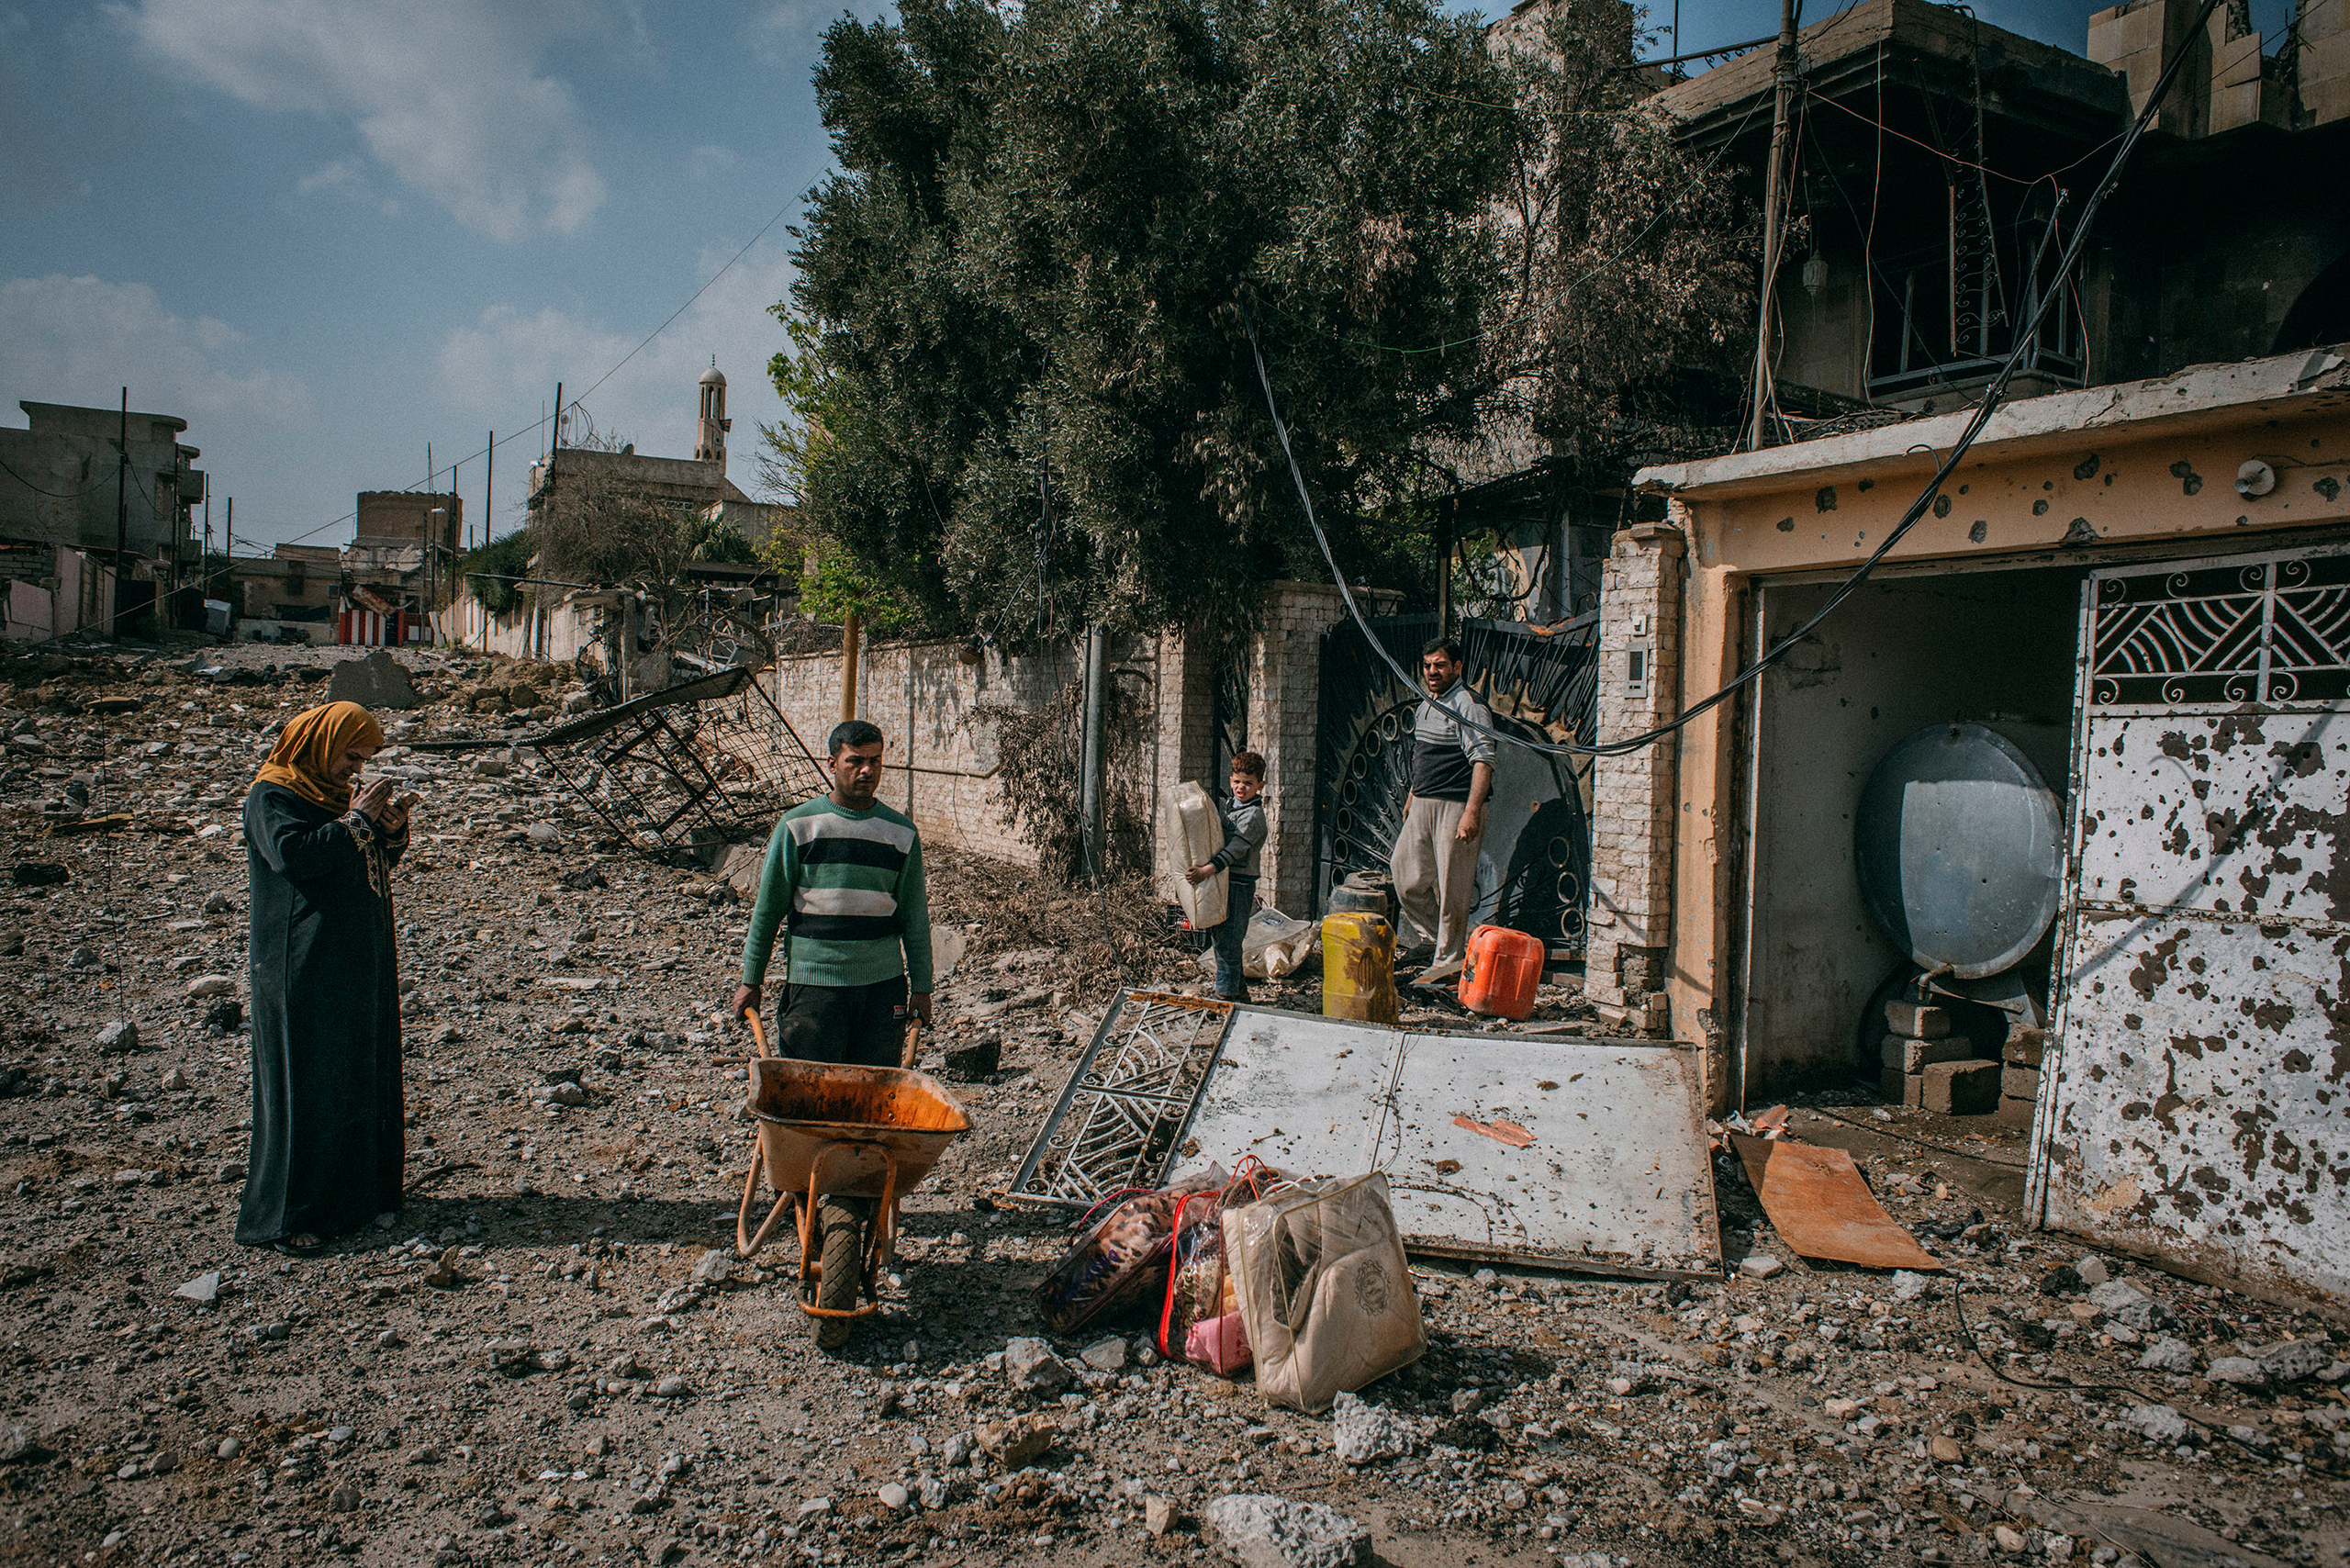 The home of Median Hikmat al-Galou was destroyed during fighting between Iraqi forces and ISIS in southwest Mosul in February 2017.